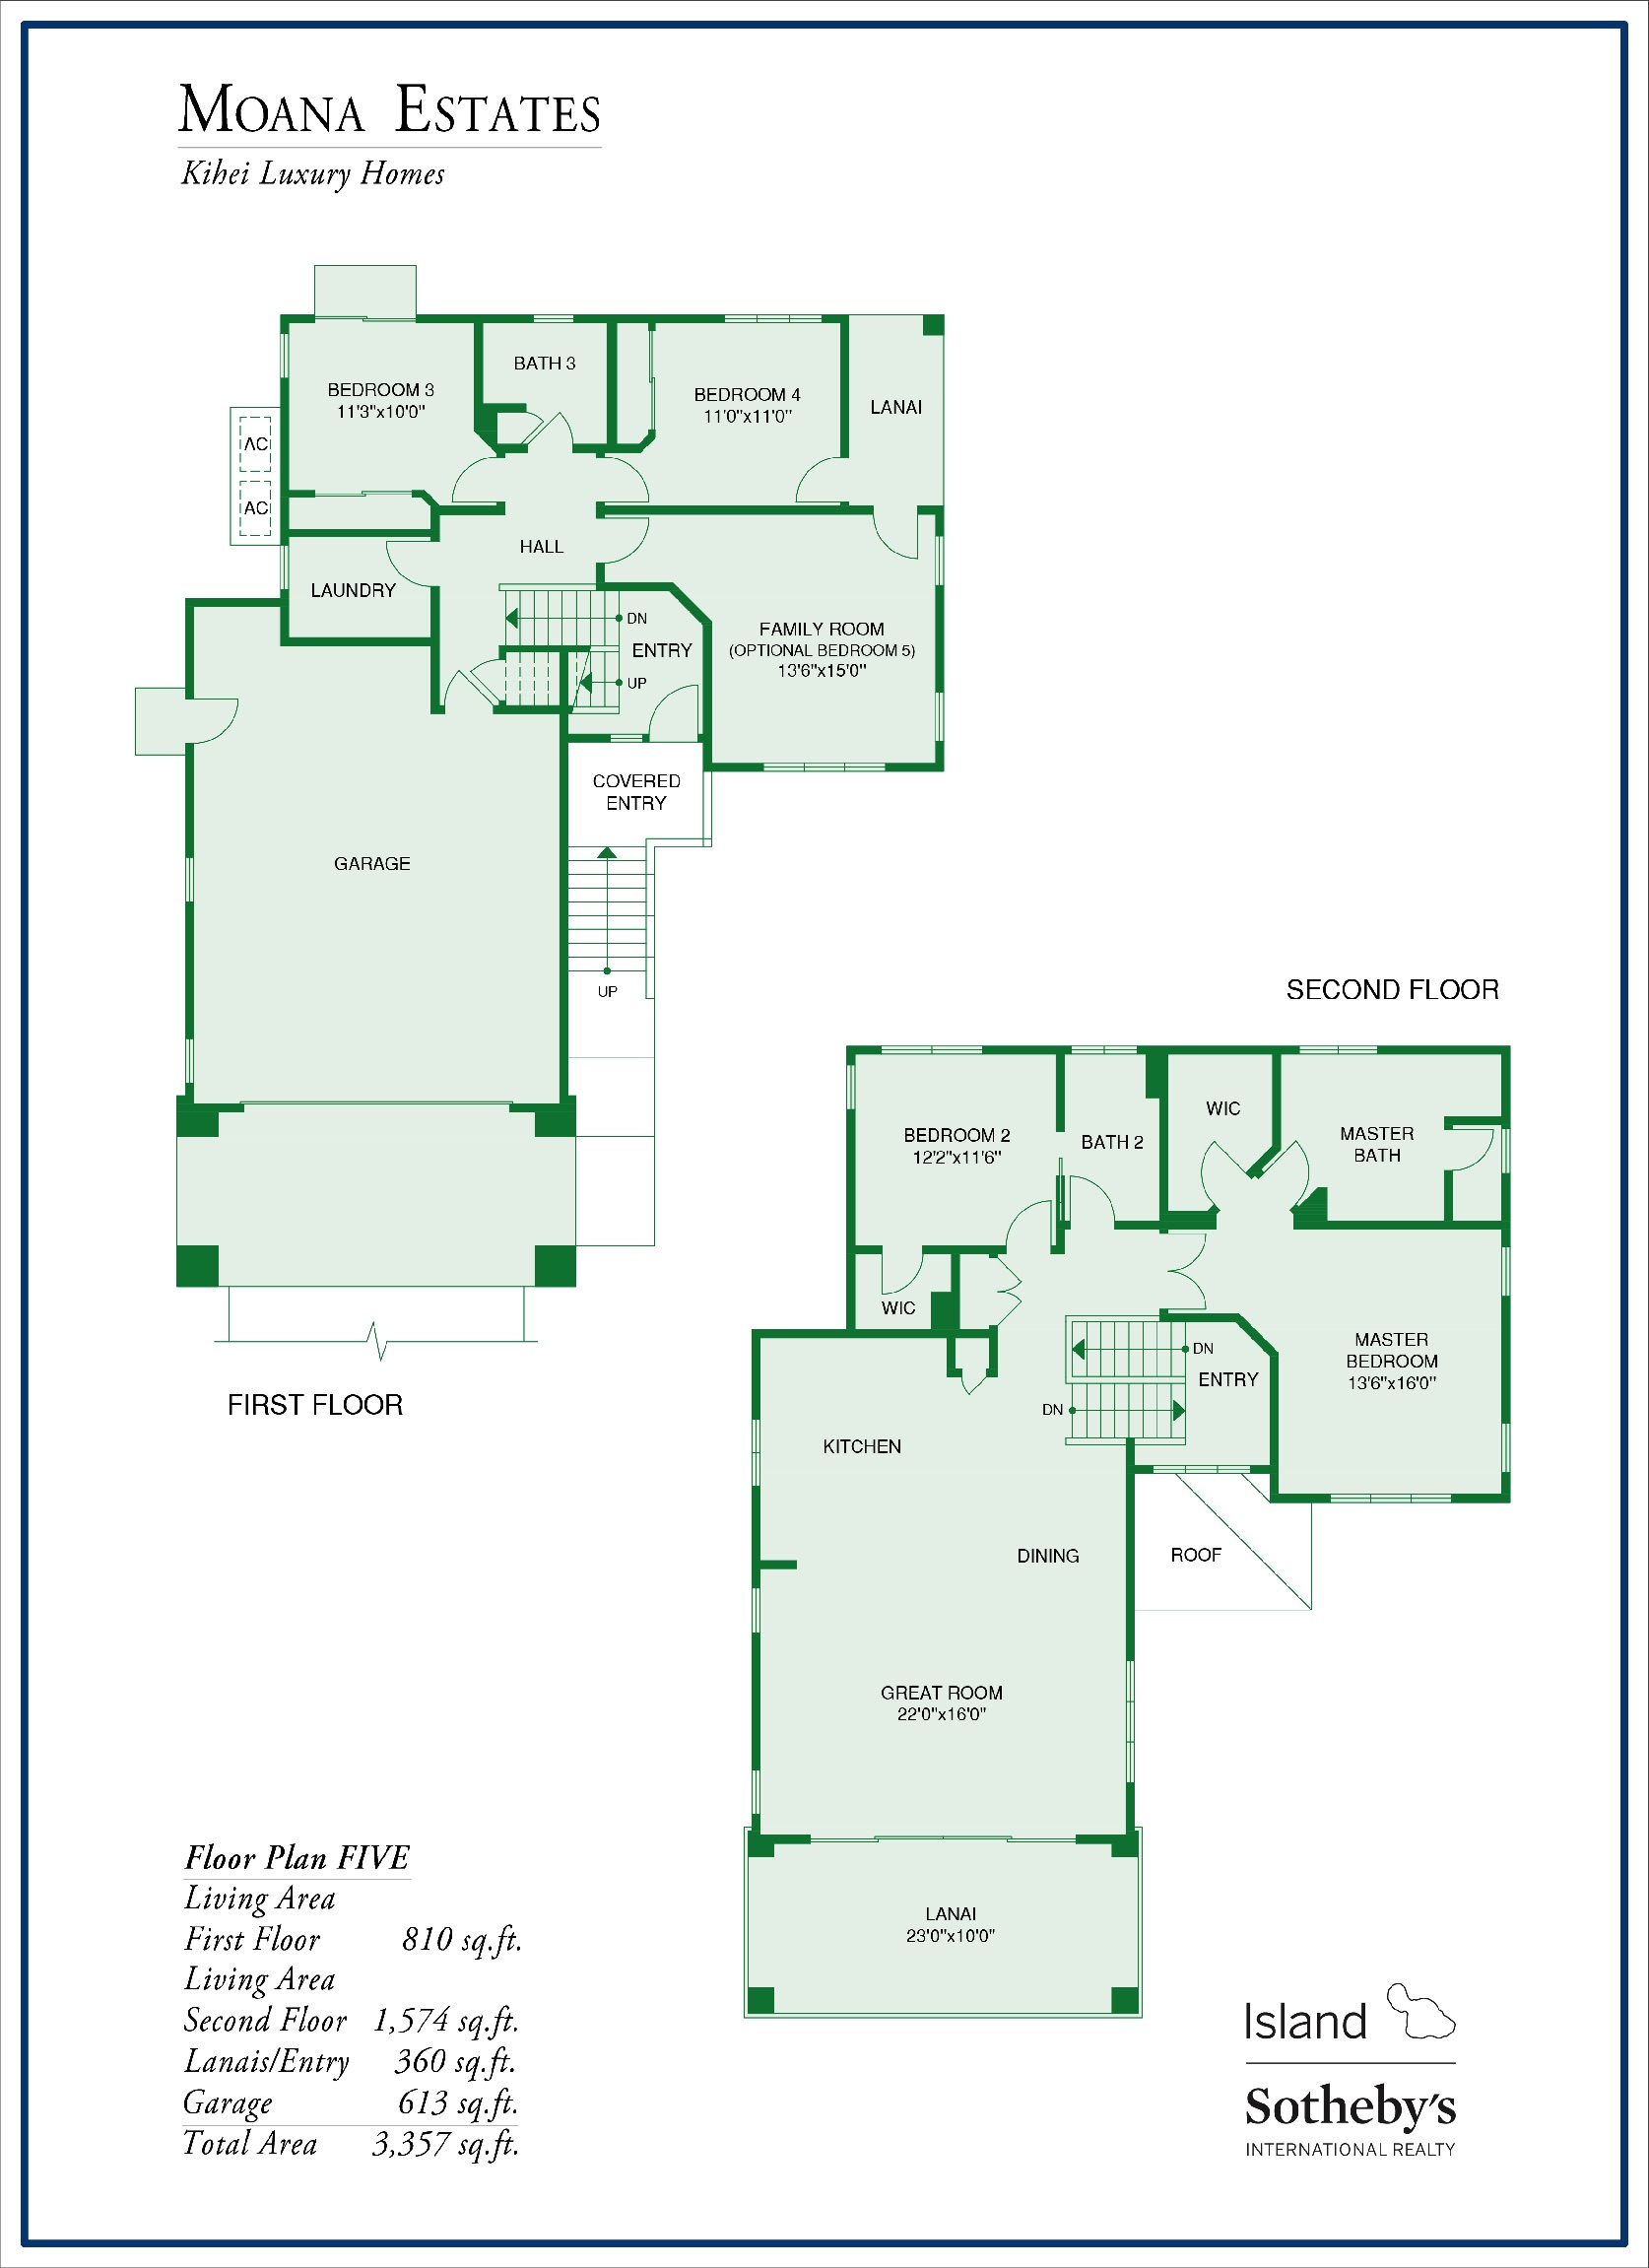 Moana Estates Floor Plan 5